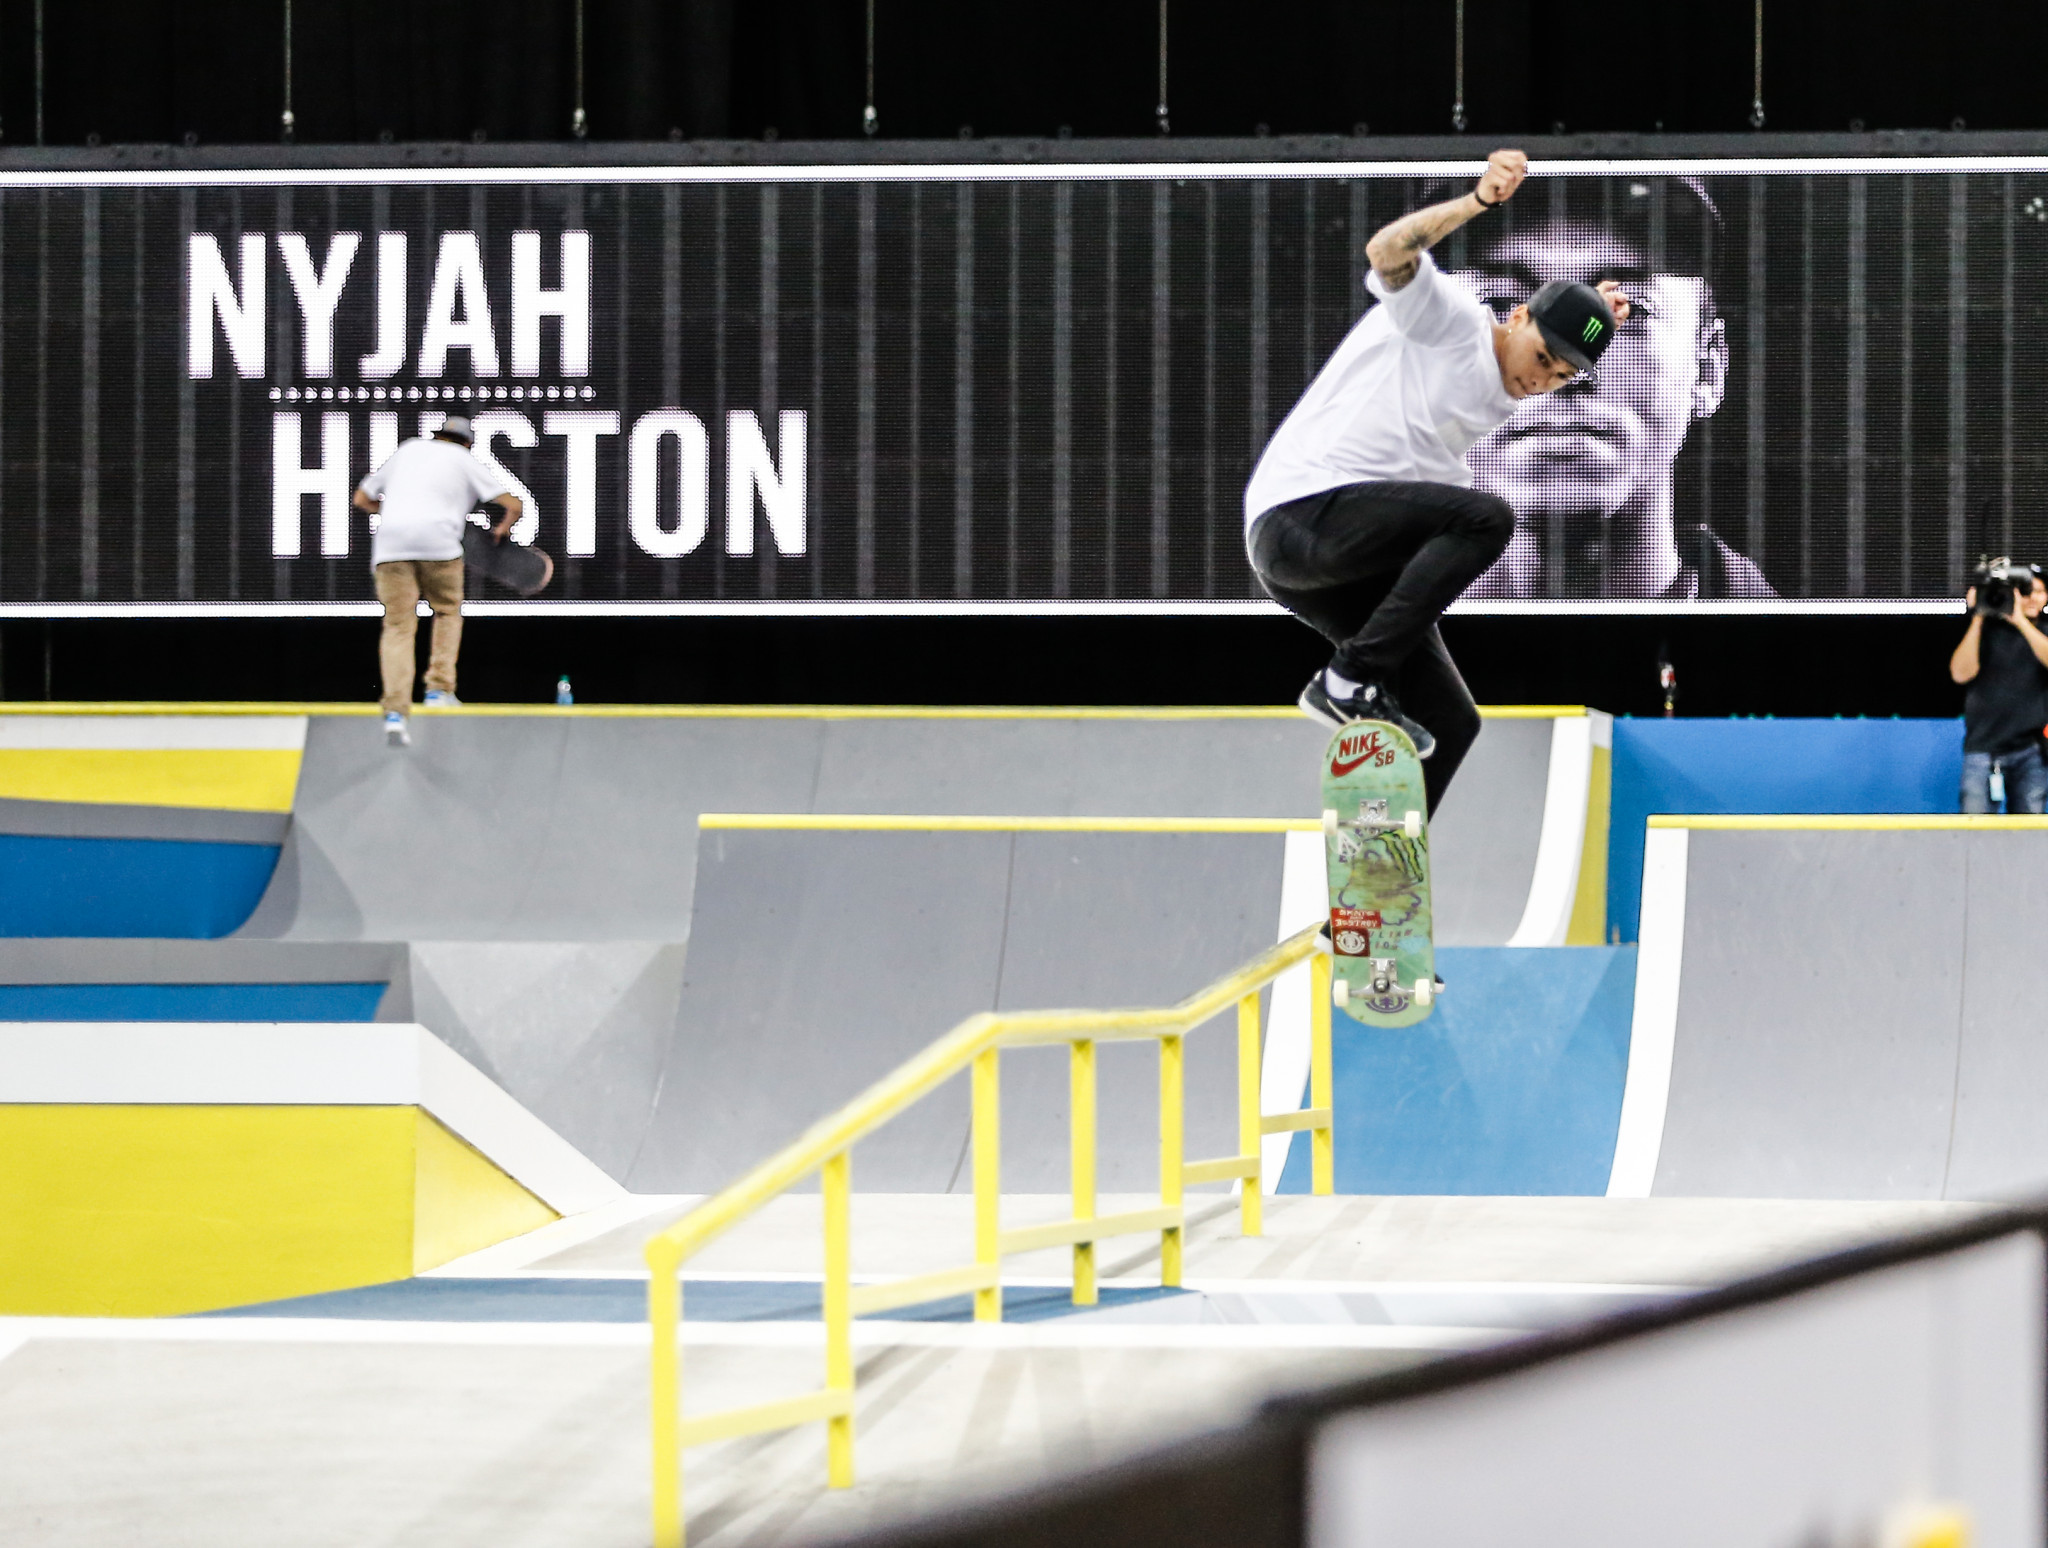 Nyjah Huston is one of the sport's most recognisable names and has won seven X Games gold medals ©Getty Images